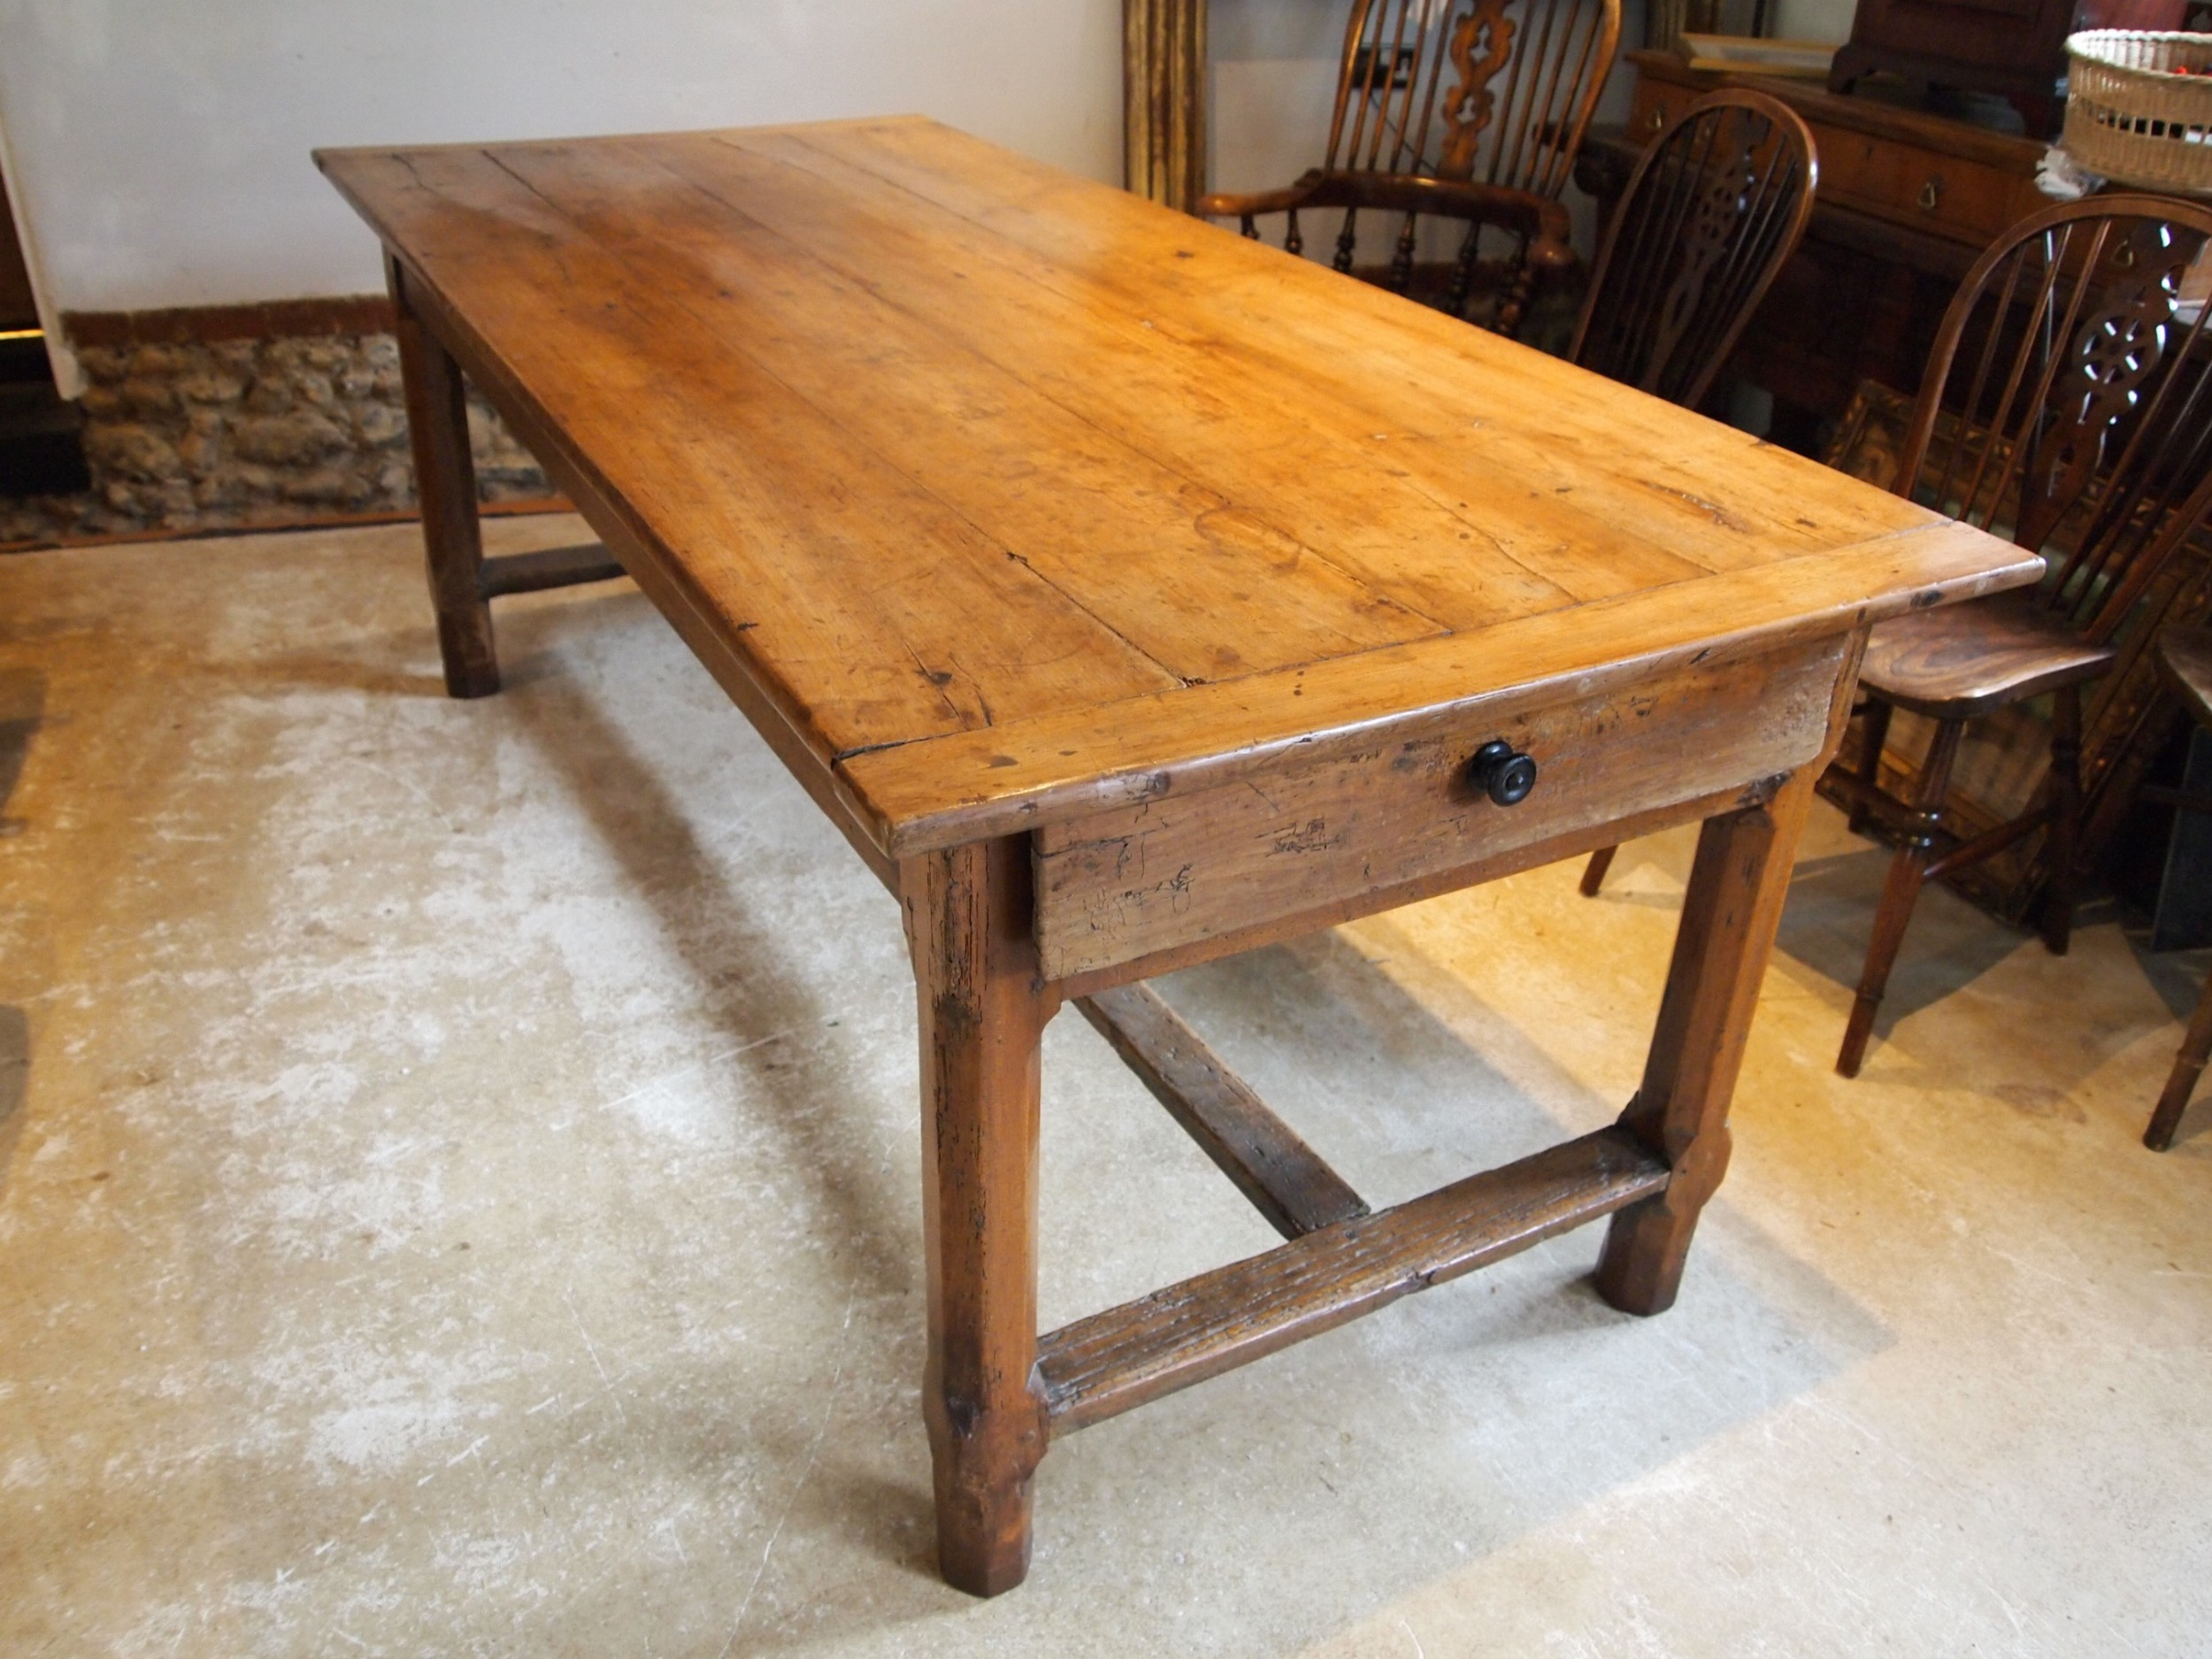 table rare french apple wood refectory dining farmhouse c1800